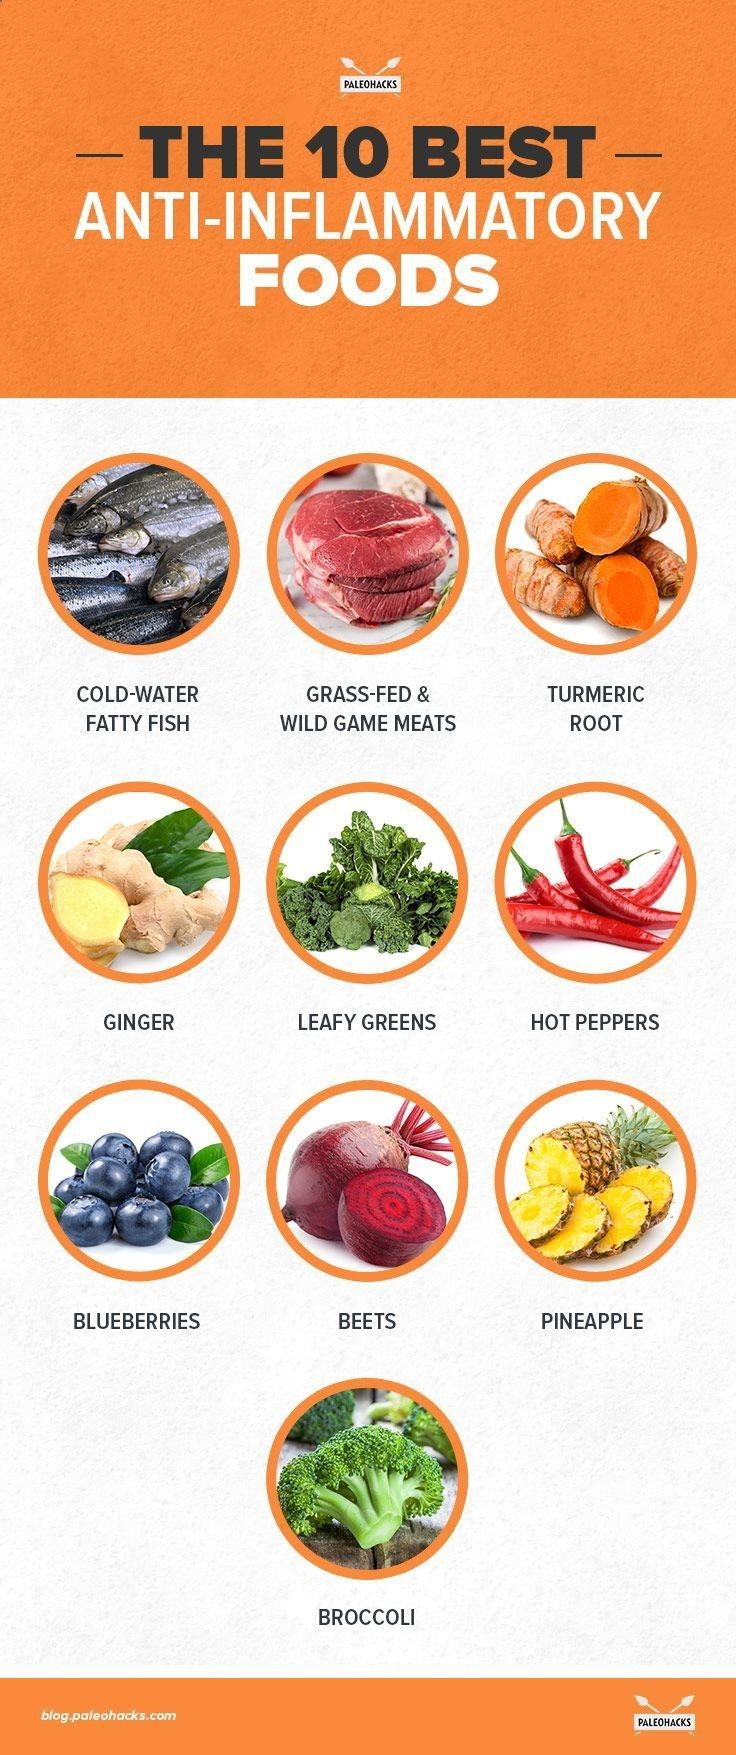 The 10 Best Anti-Inflammatory Foods For Your Body